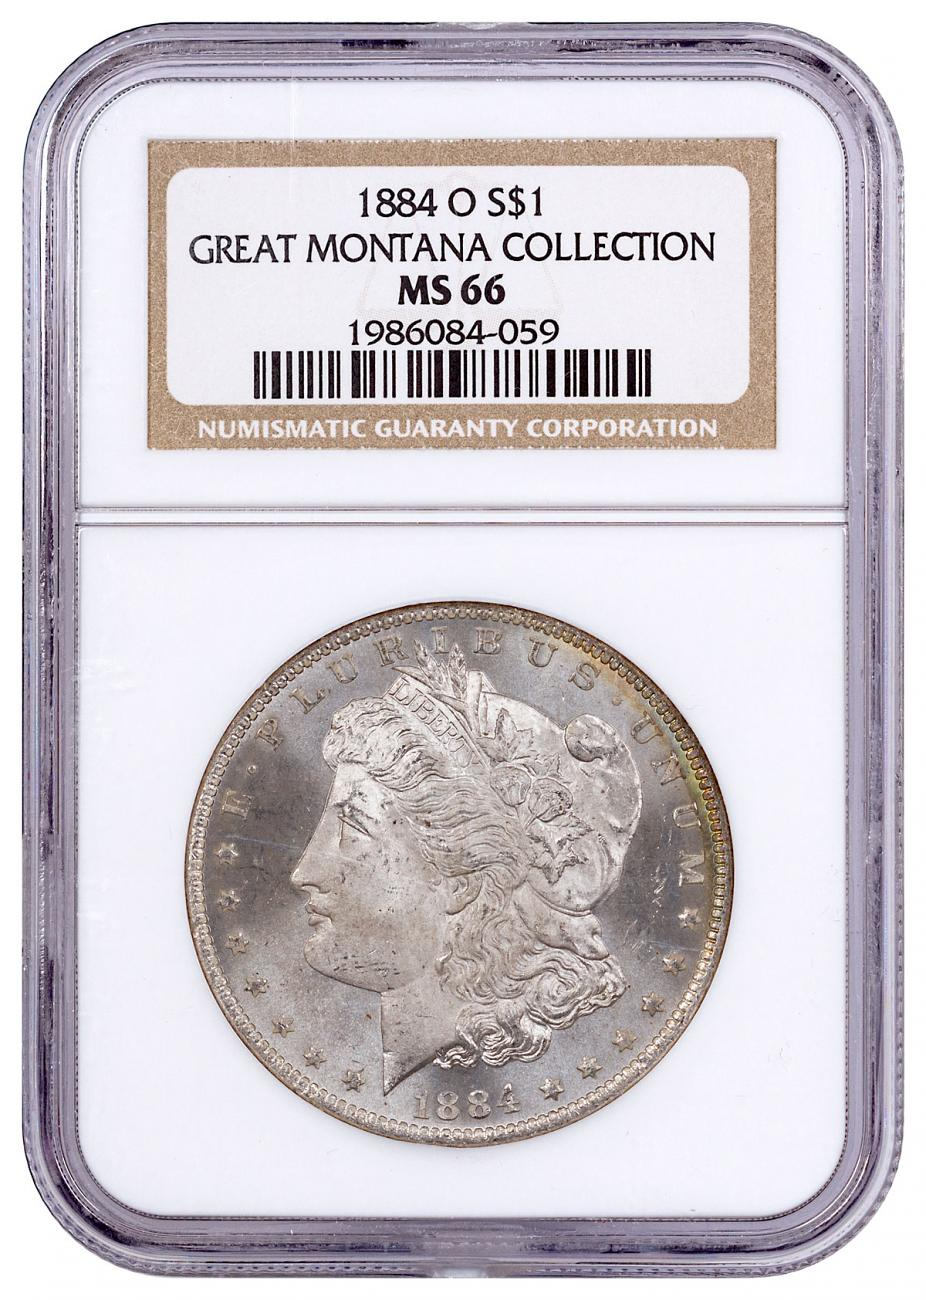 1884-O Morgan Silver Dollar From the Great Montana Collection NGC MS66 with Morgan Guide